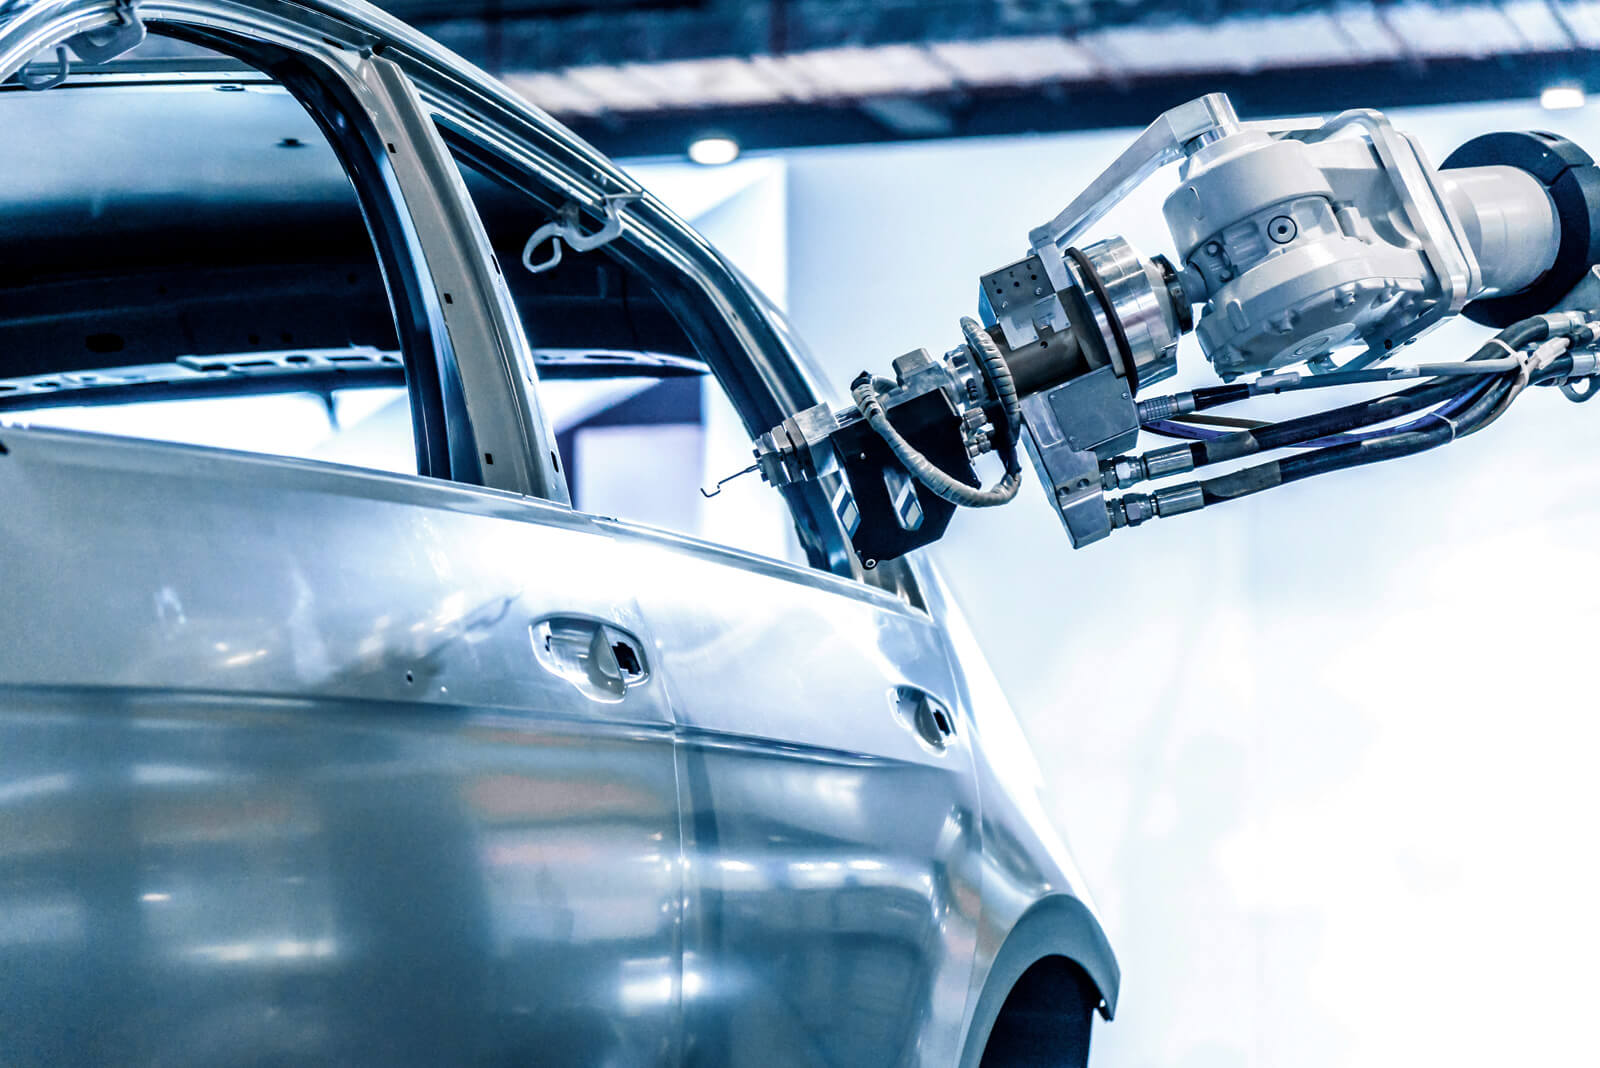 Business IoT platforms: robot manufactures car